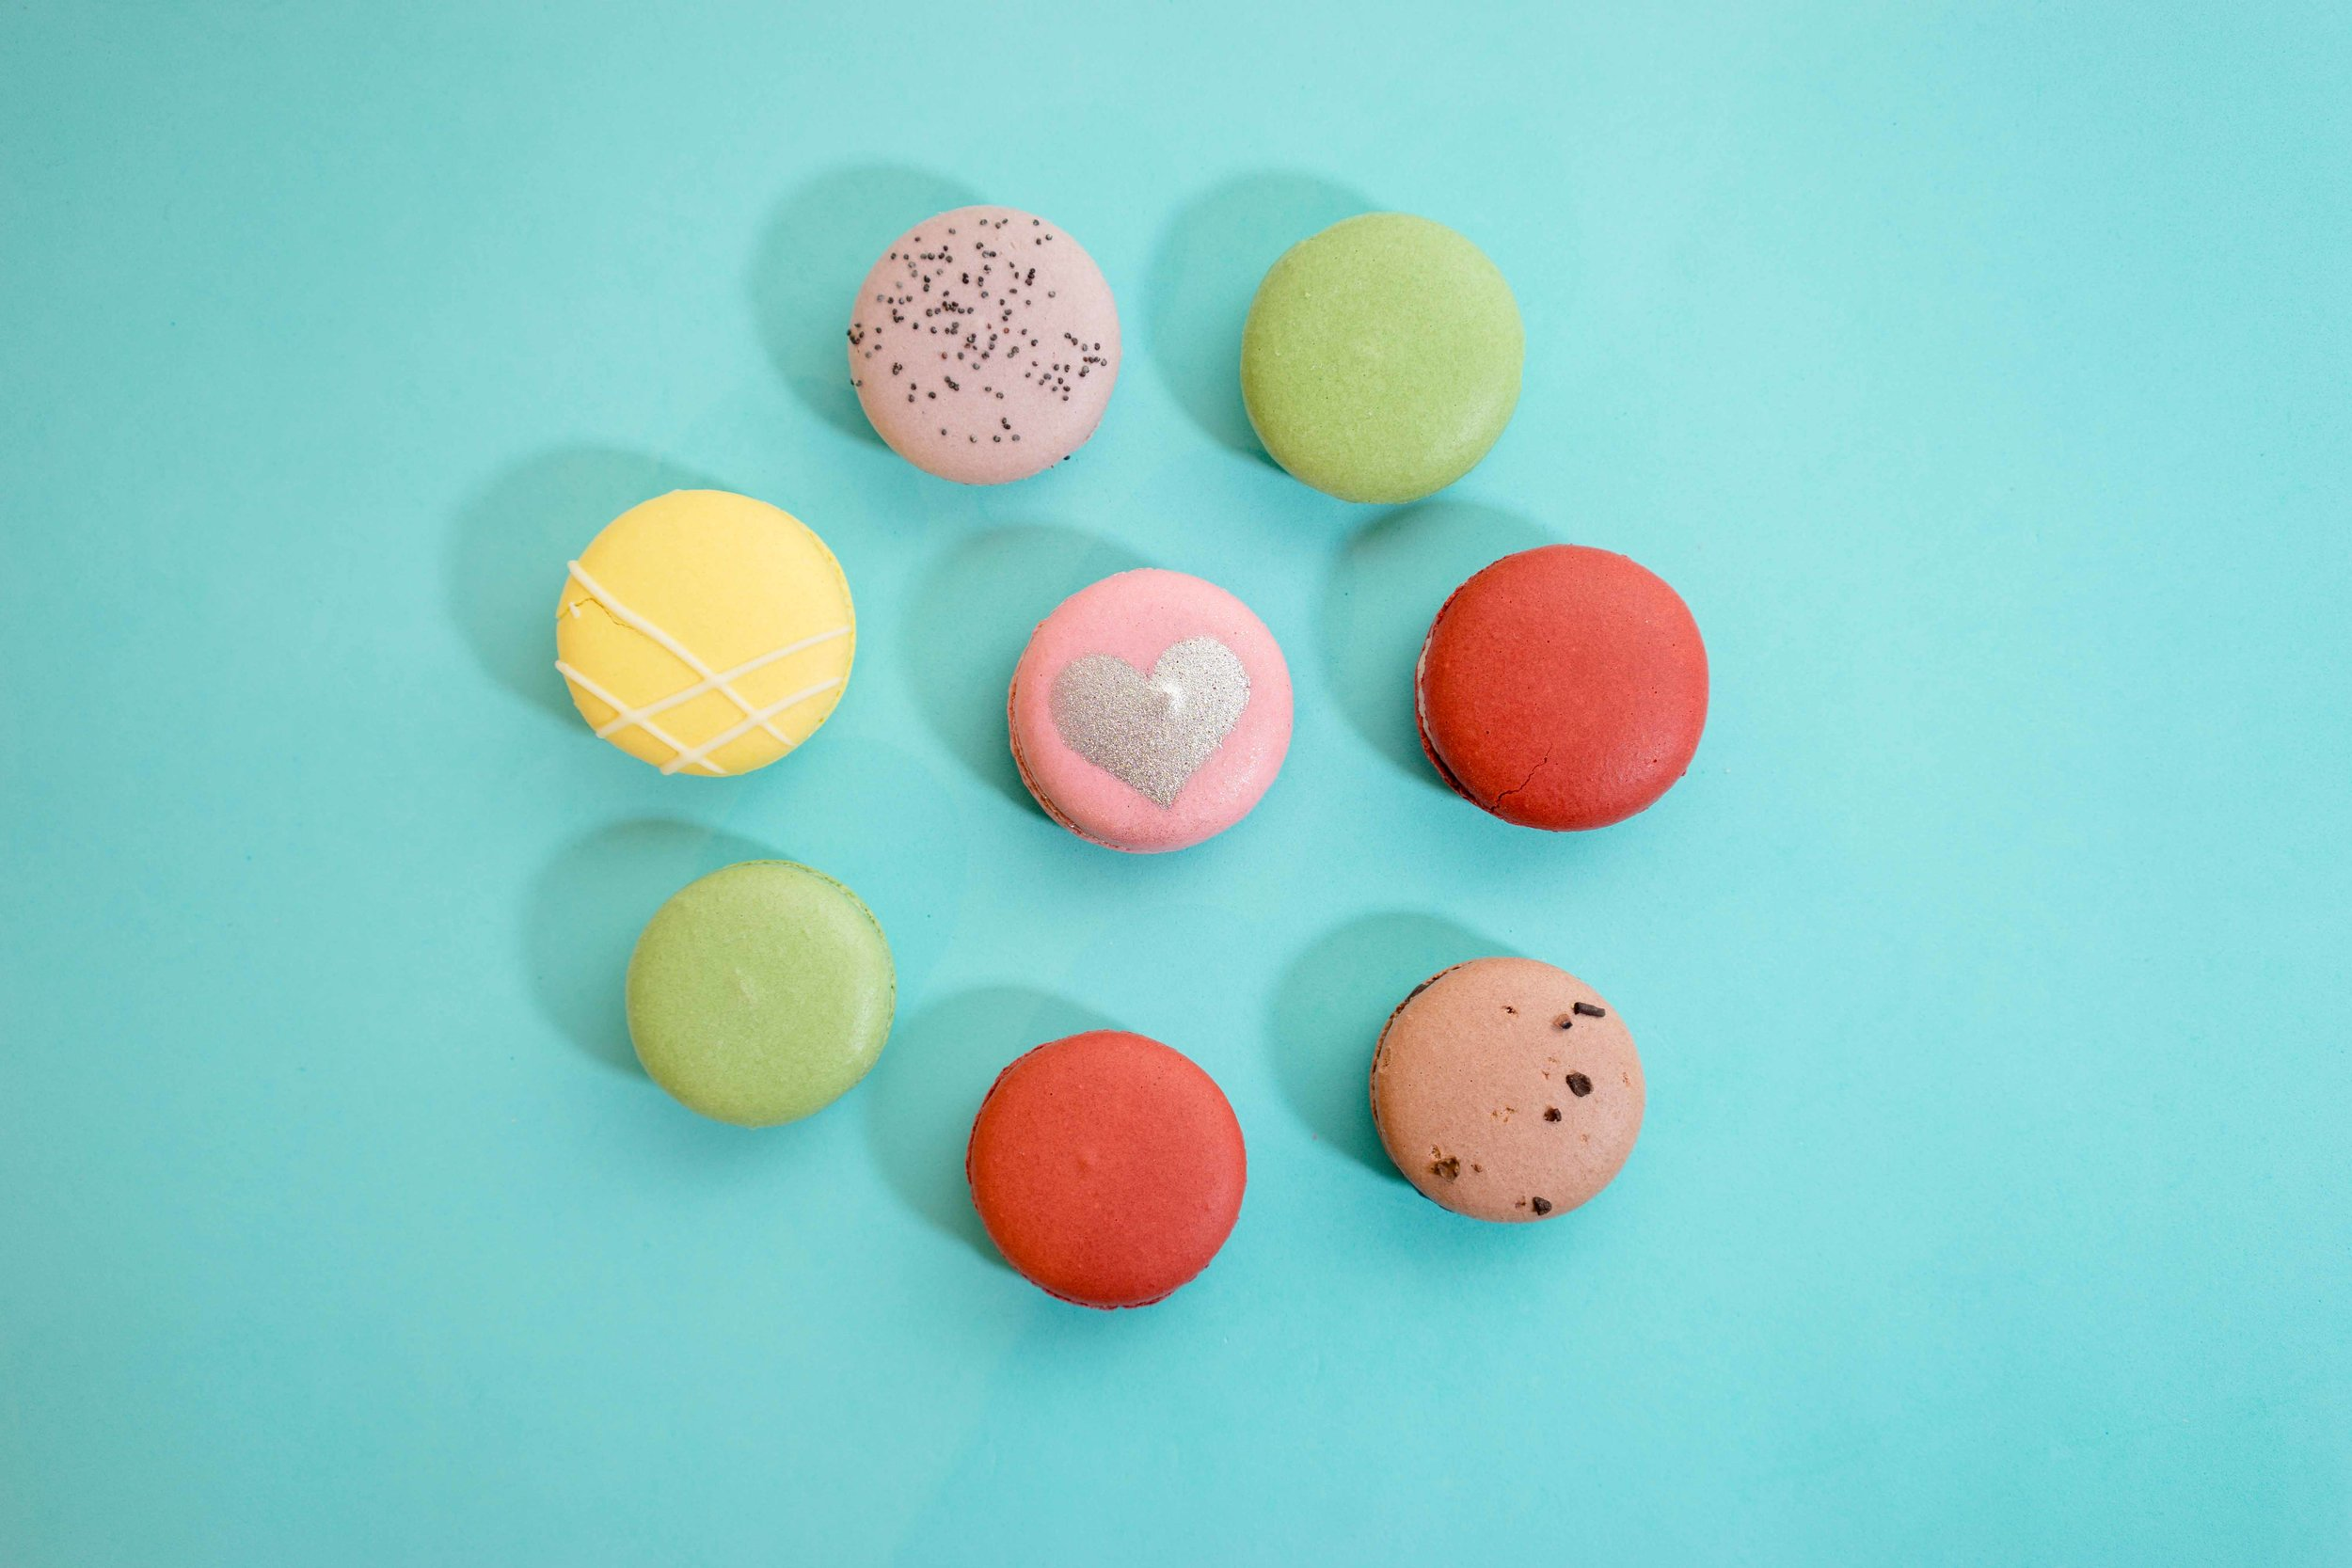 Pick one of your favourites or try them all | Macaron Photography on blue backdrop by A Few Good Clicks in Palo Alto